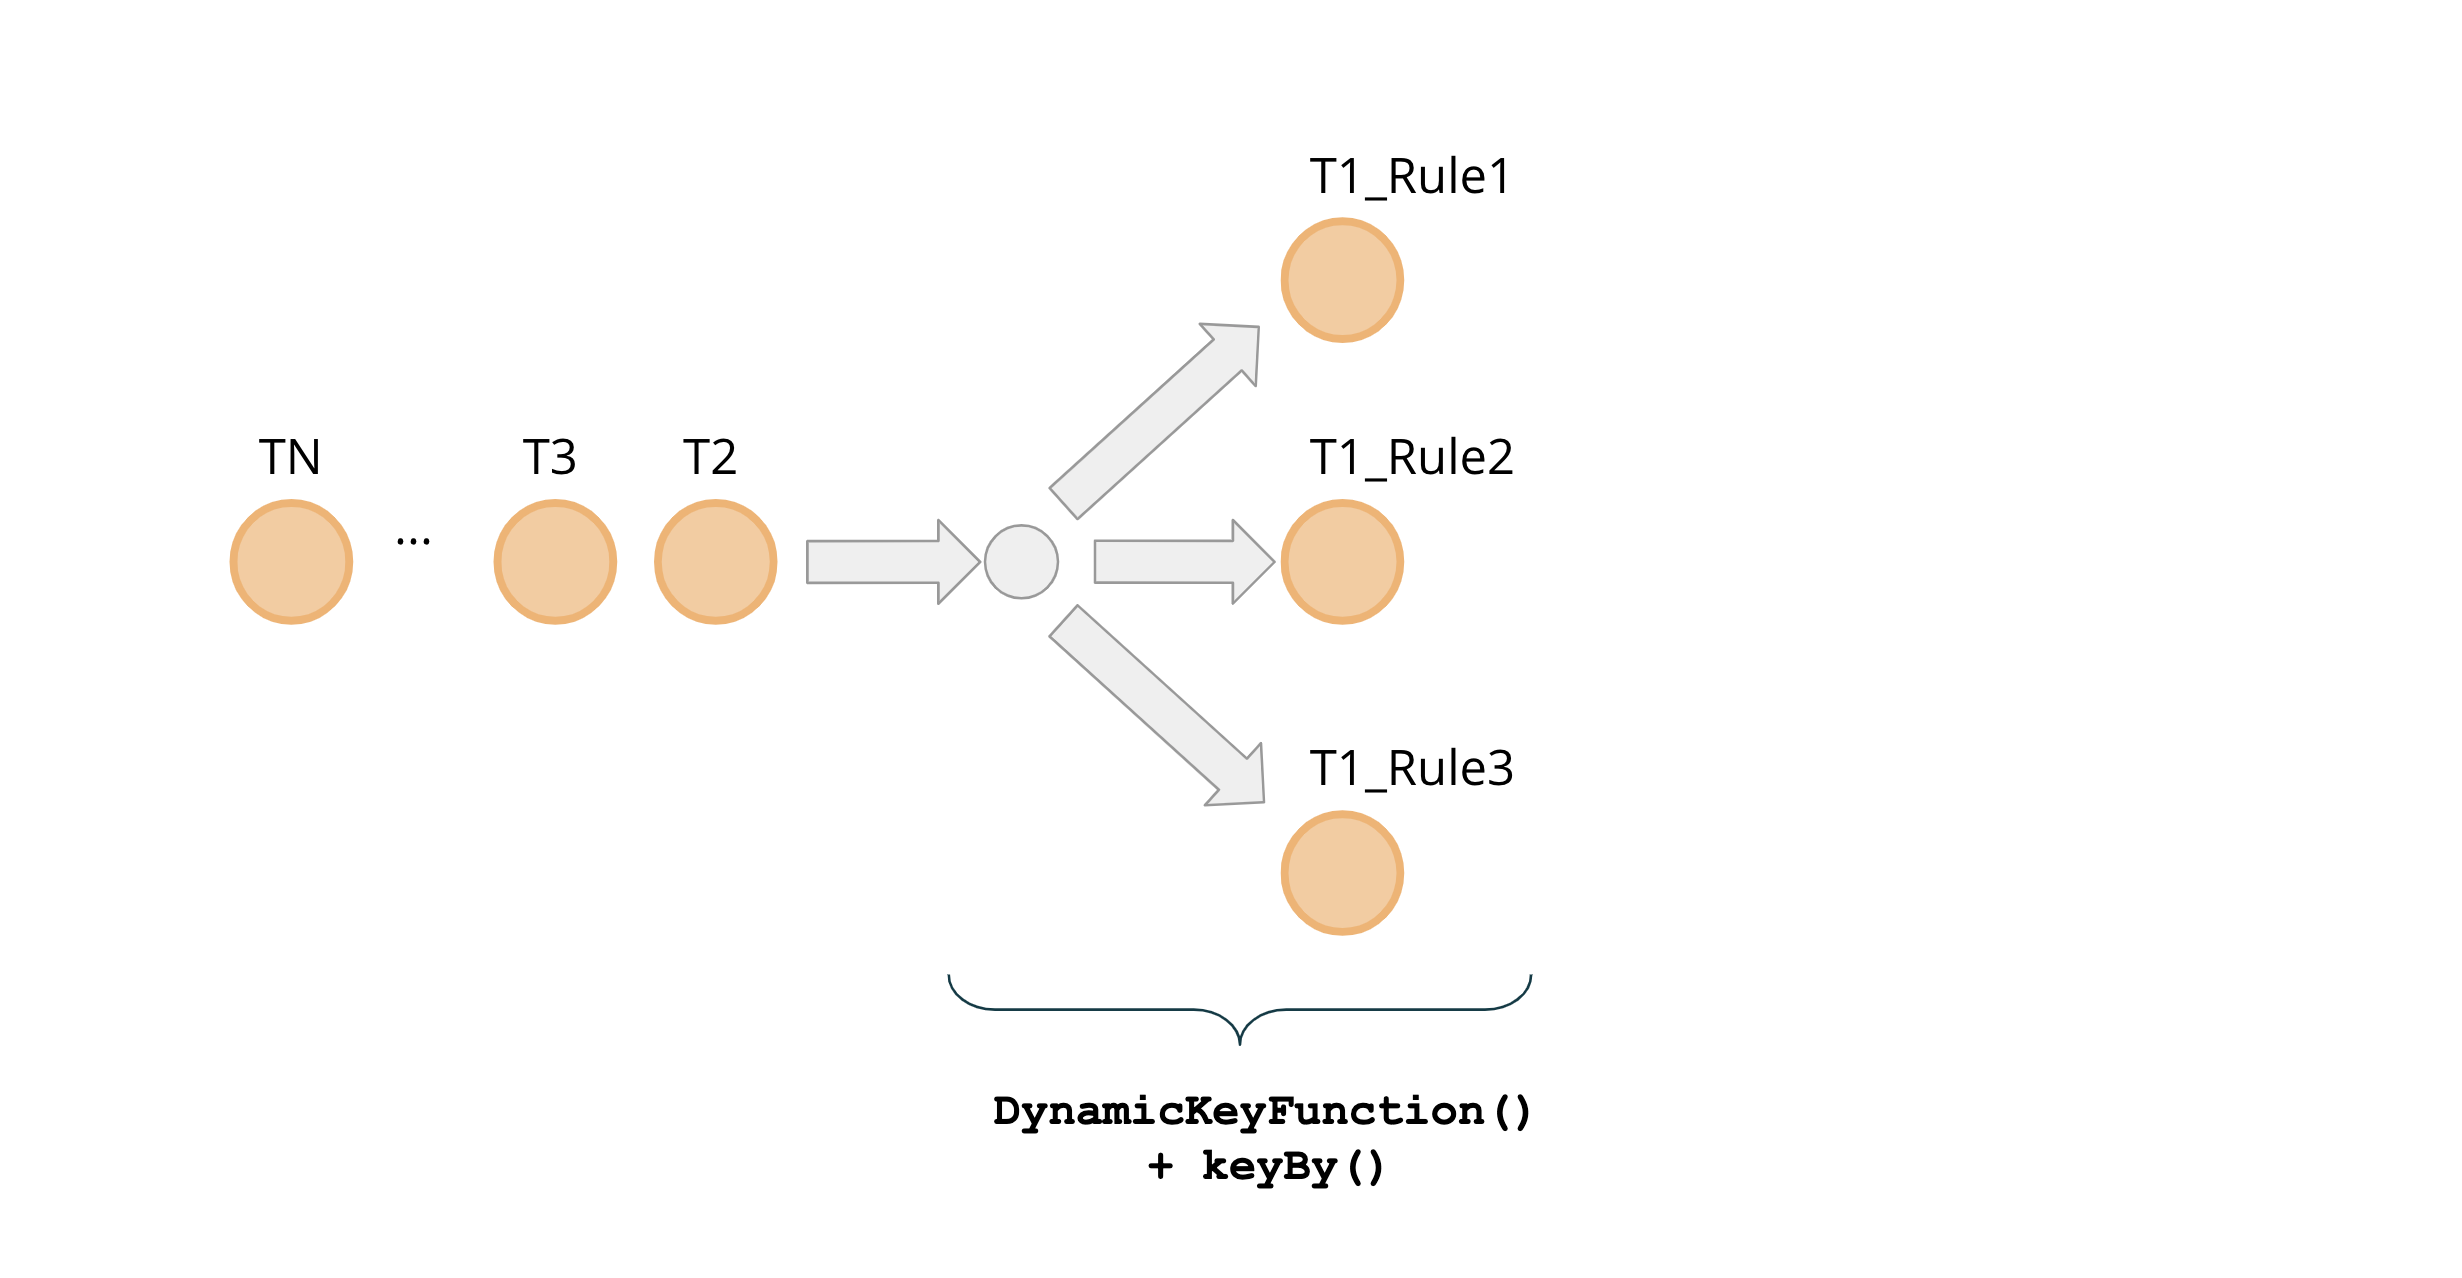 Figure 3: Forking events with Dynamic Key Function